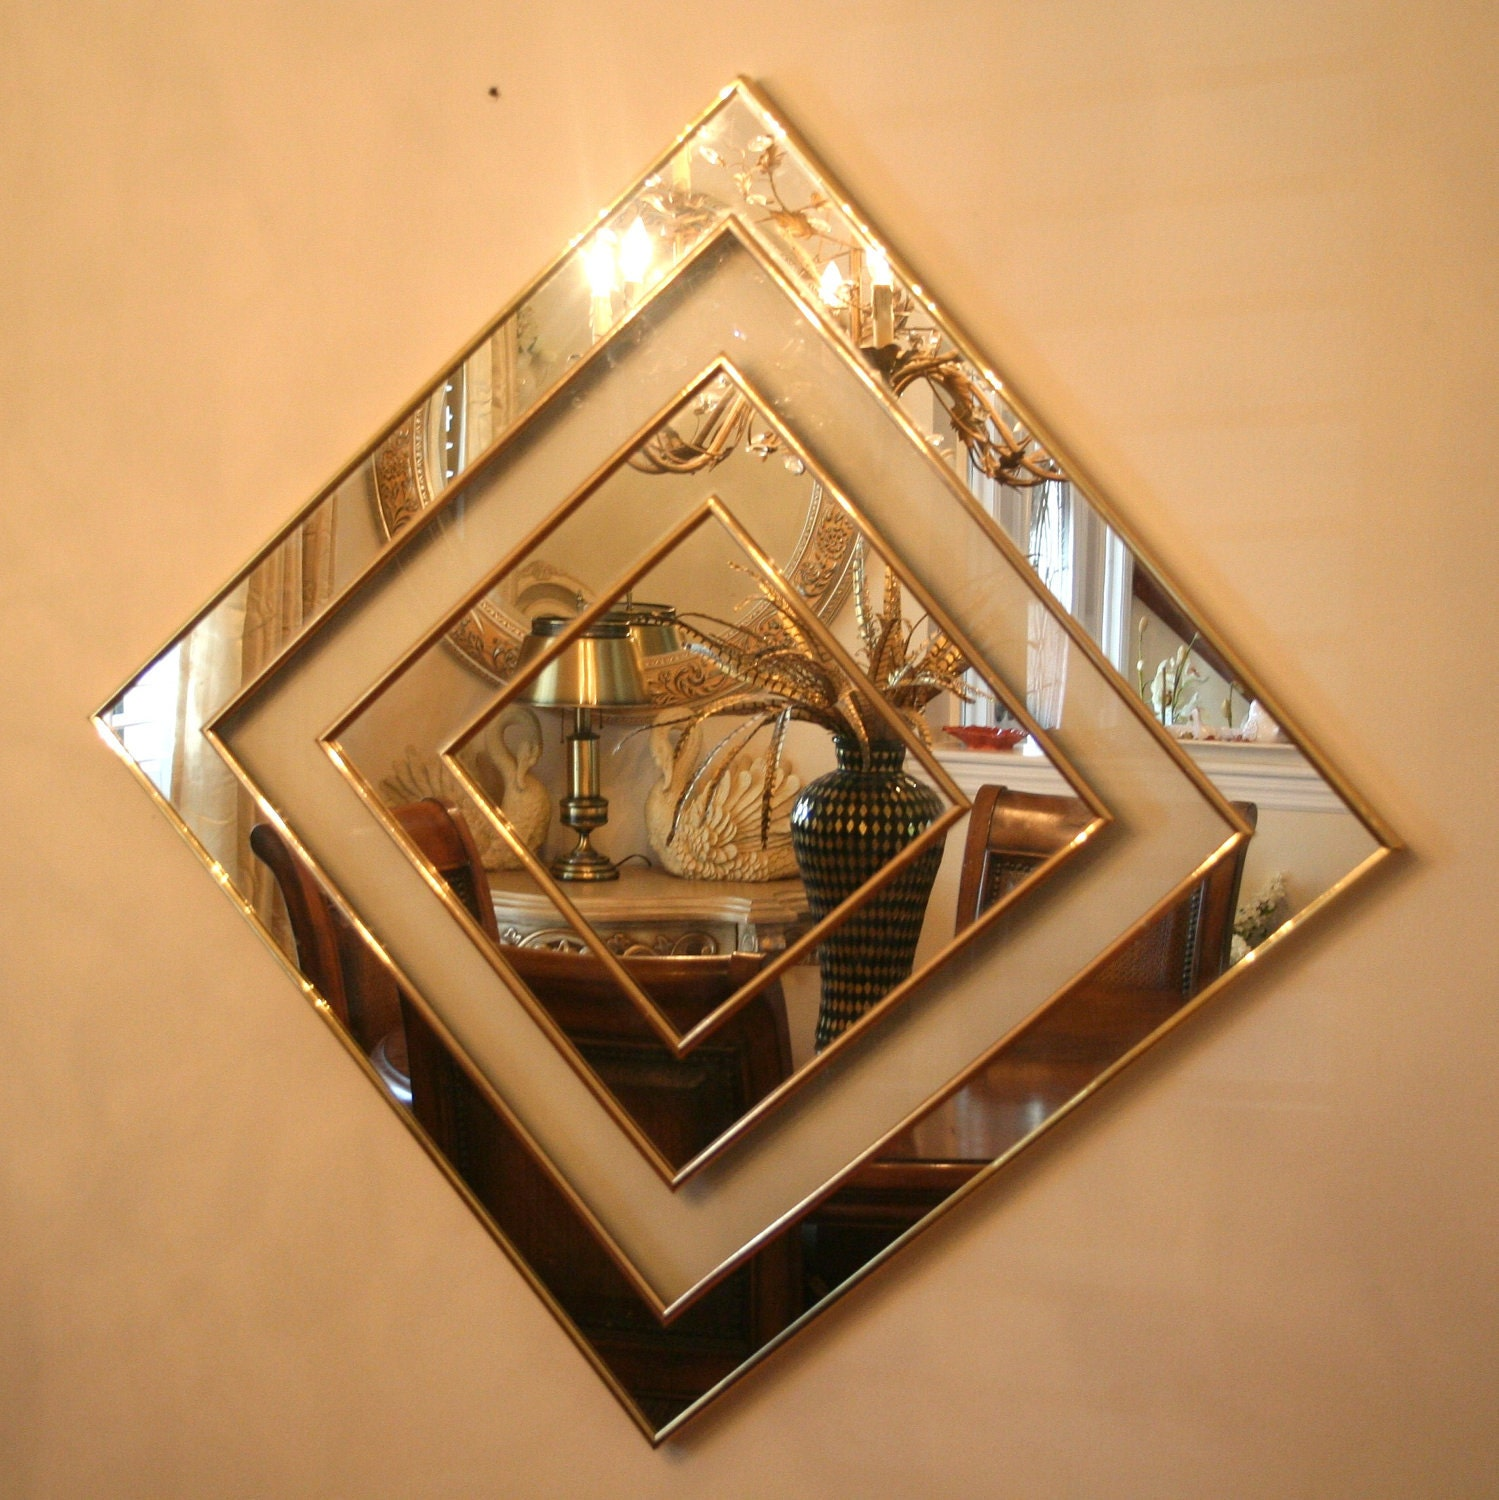 Retro Sharon Art Concept Geometric Mirror And Glass By